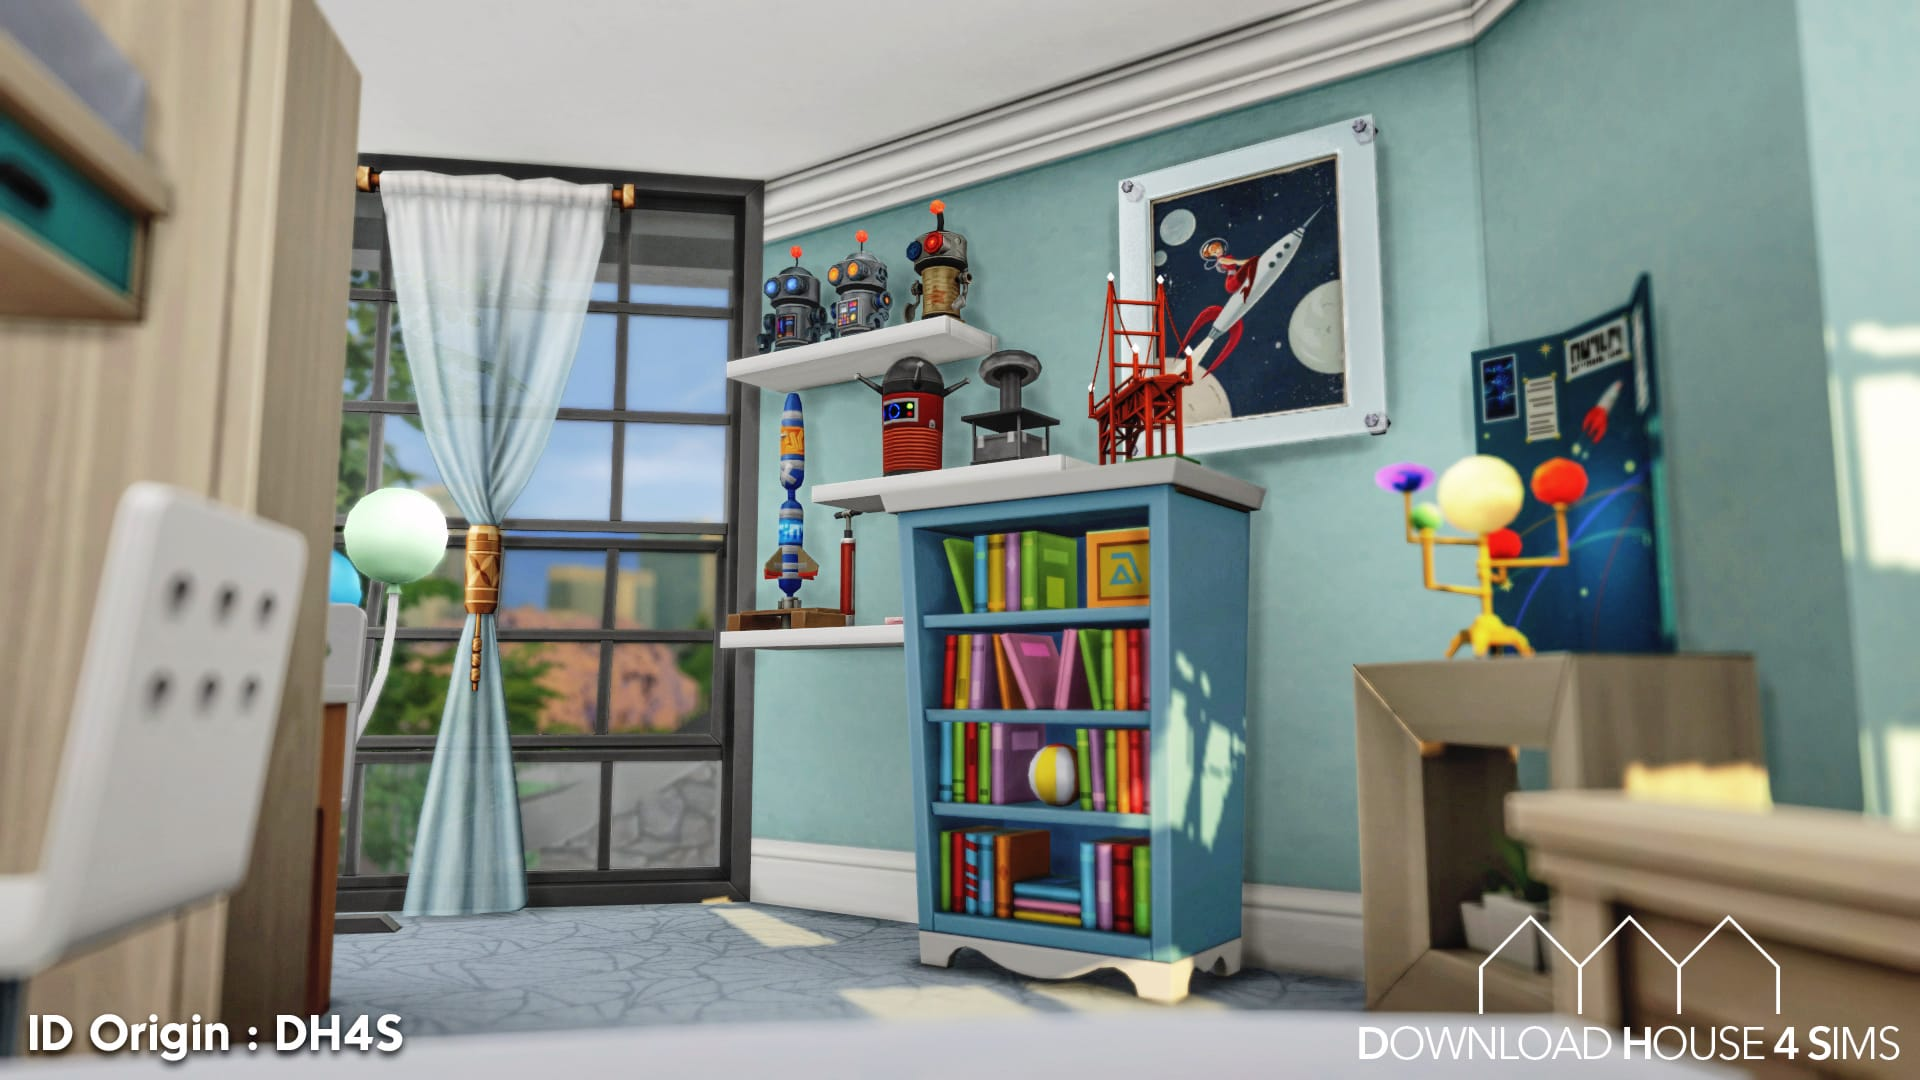 Family-Cottage-Sims-4-DH4S-download-house-4-sims-25